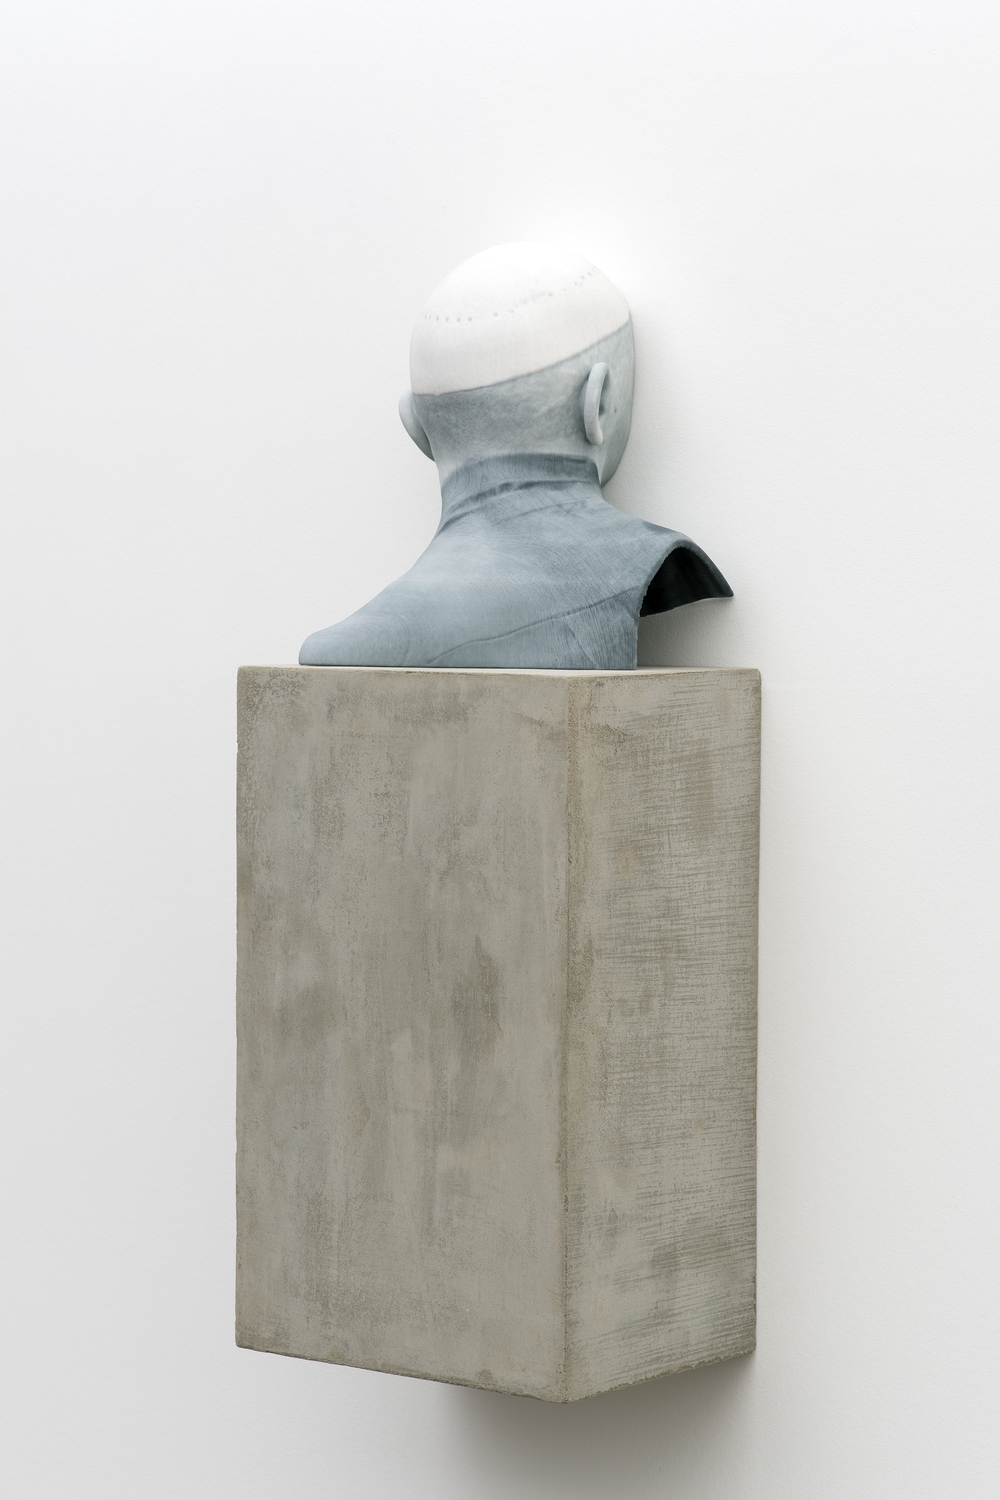 Man of Words (3), 2014 Pigmented plaster ZPrint, concrete 32.25 x 12 x 9 inches